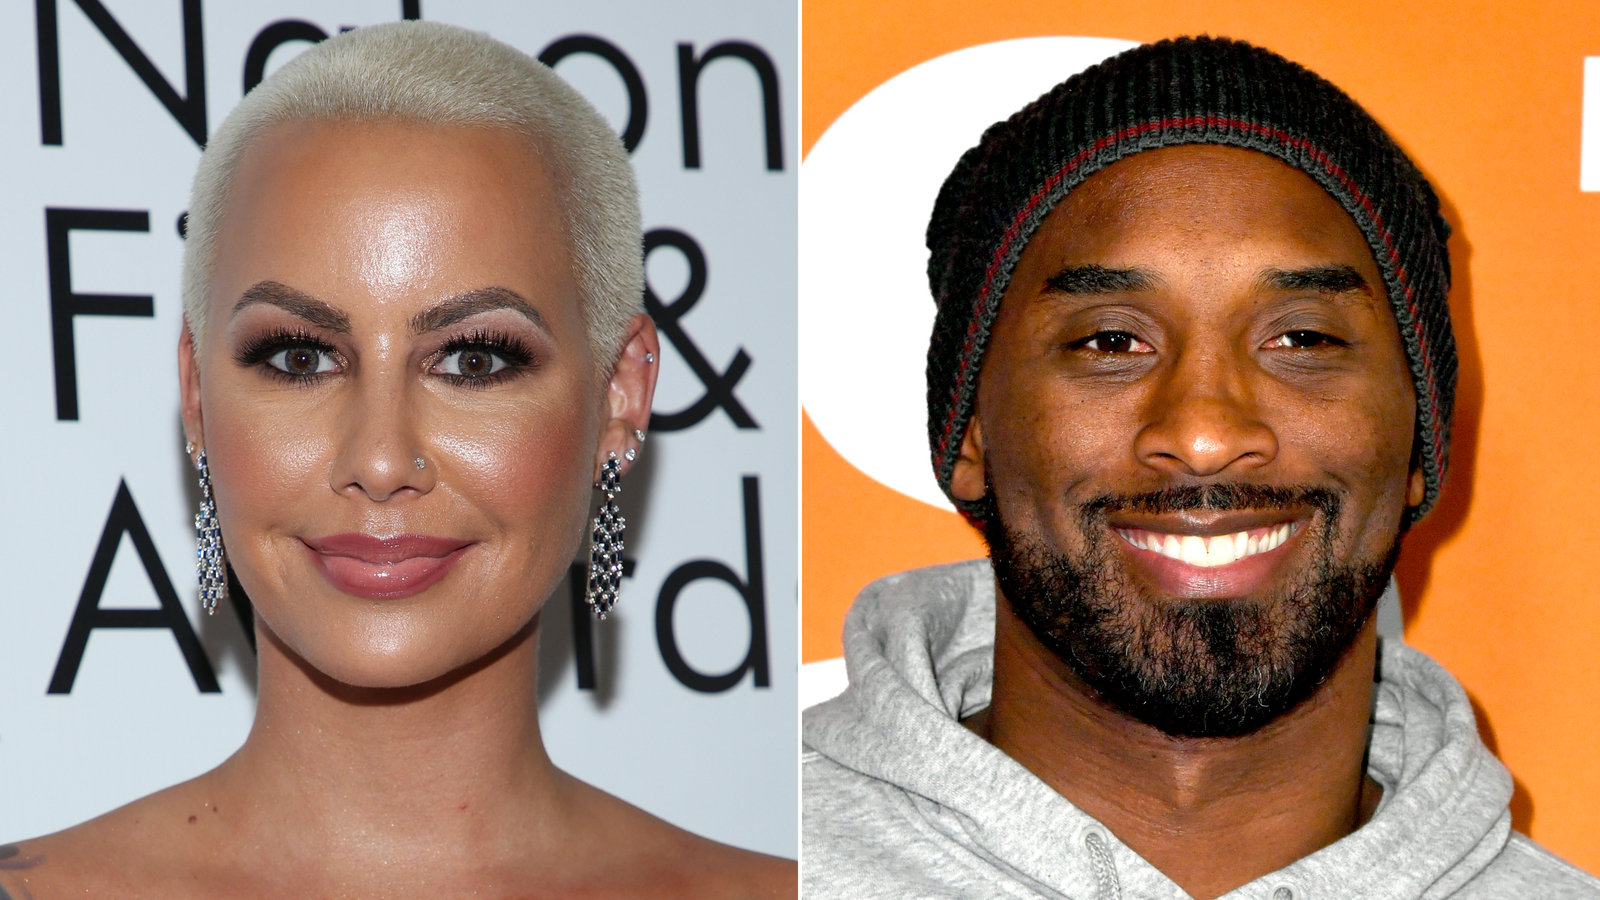 Amber Rose reveals how Kobe Bryant's death inspired her forehead tattoo